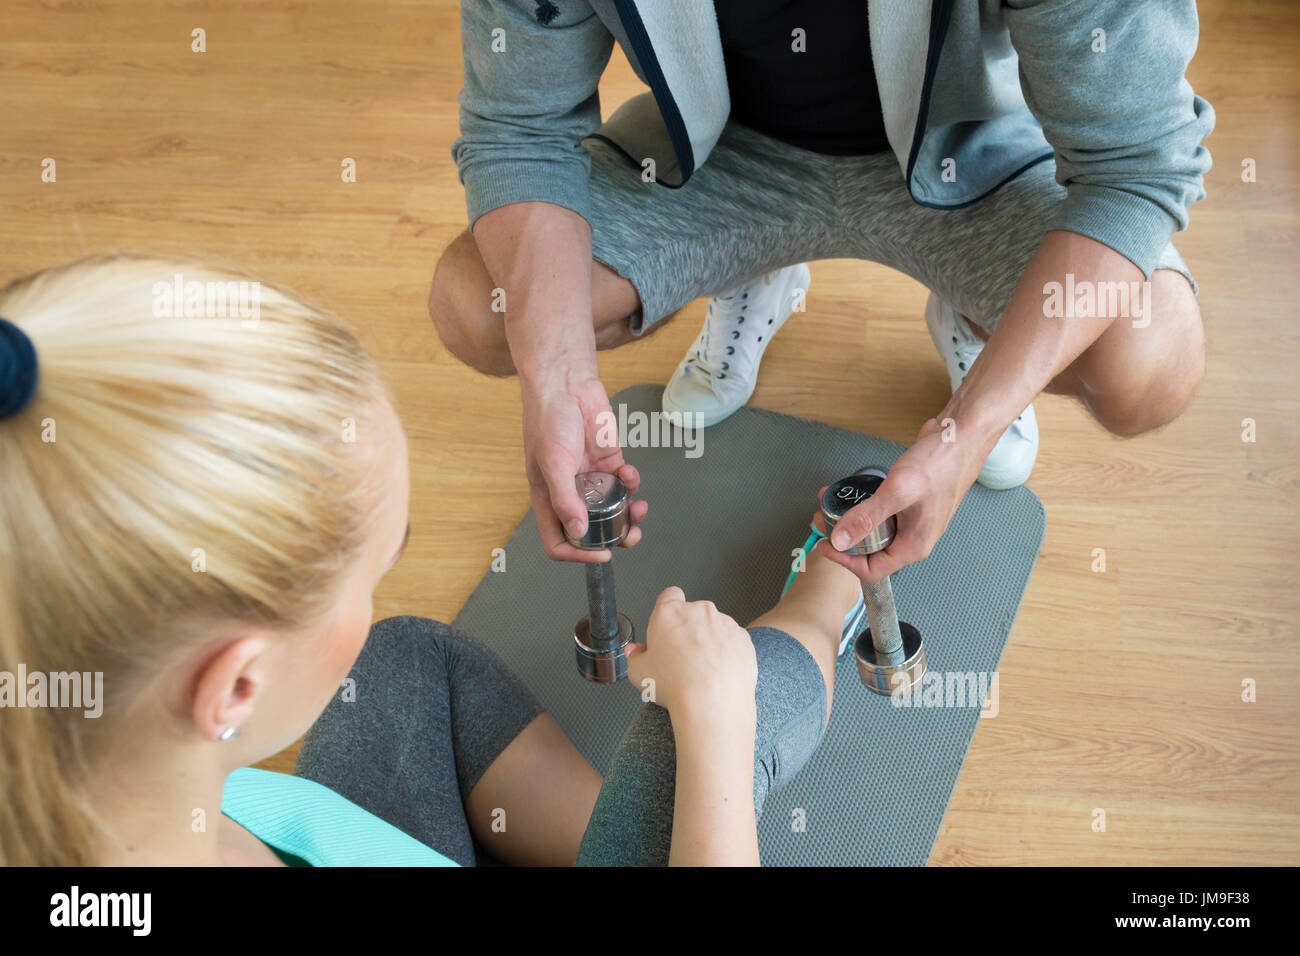 Personal trainer handing dumbbells to young woman during workout session - Stock Image